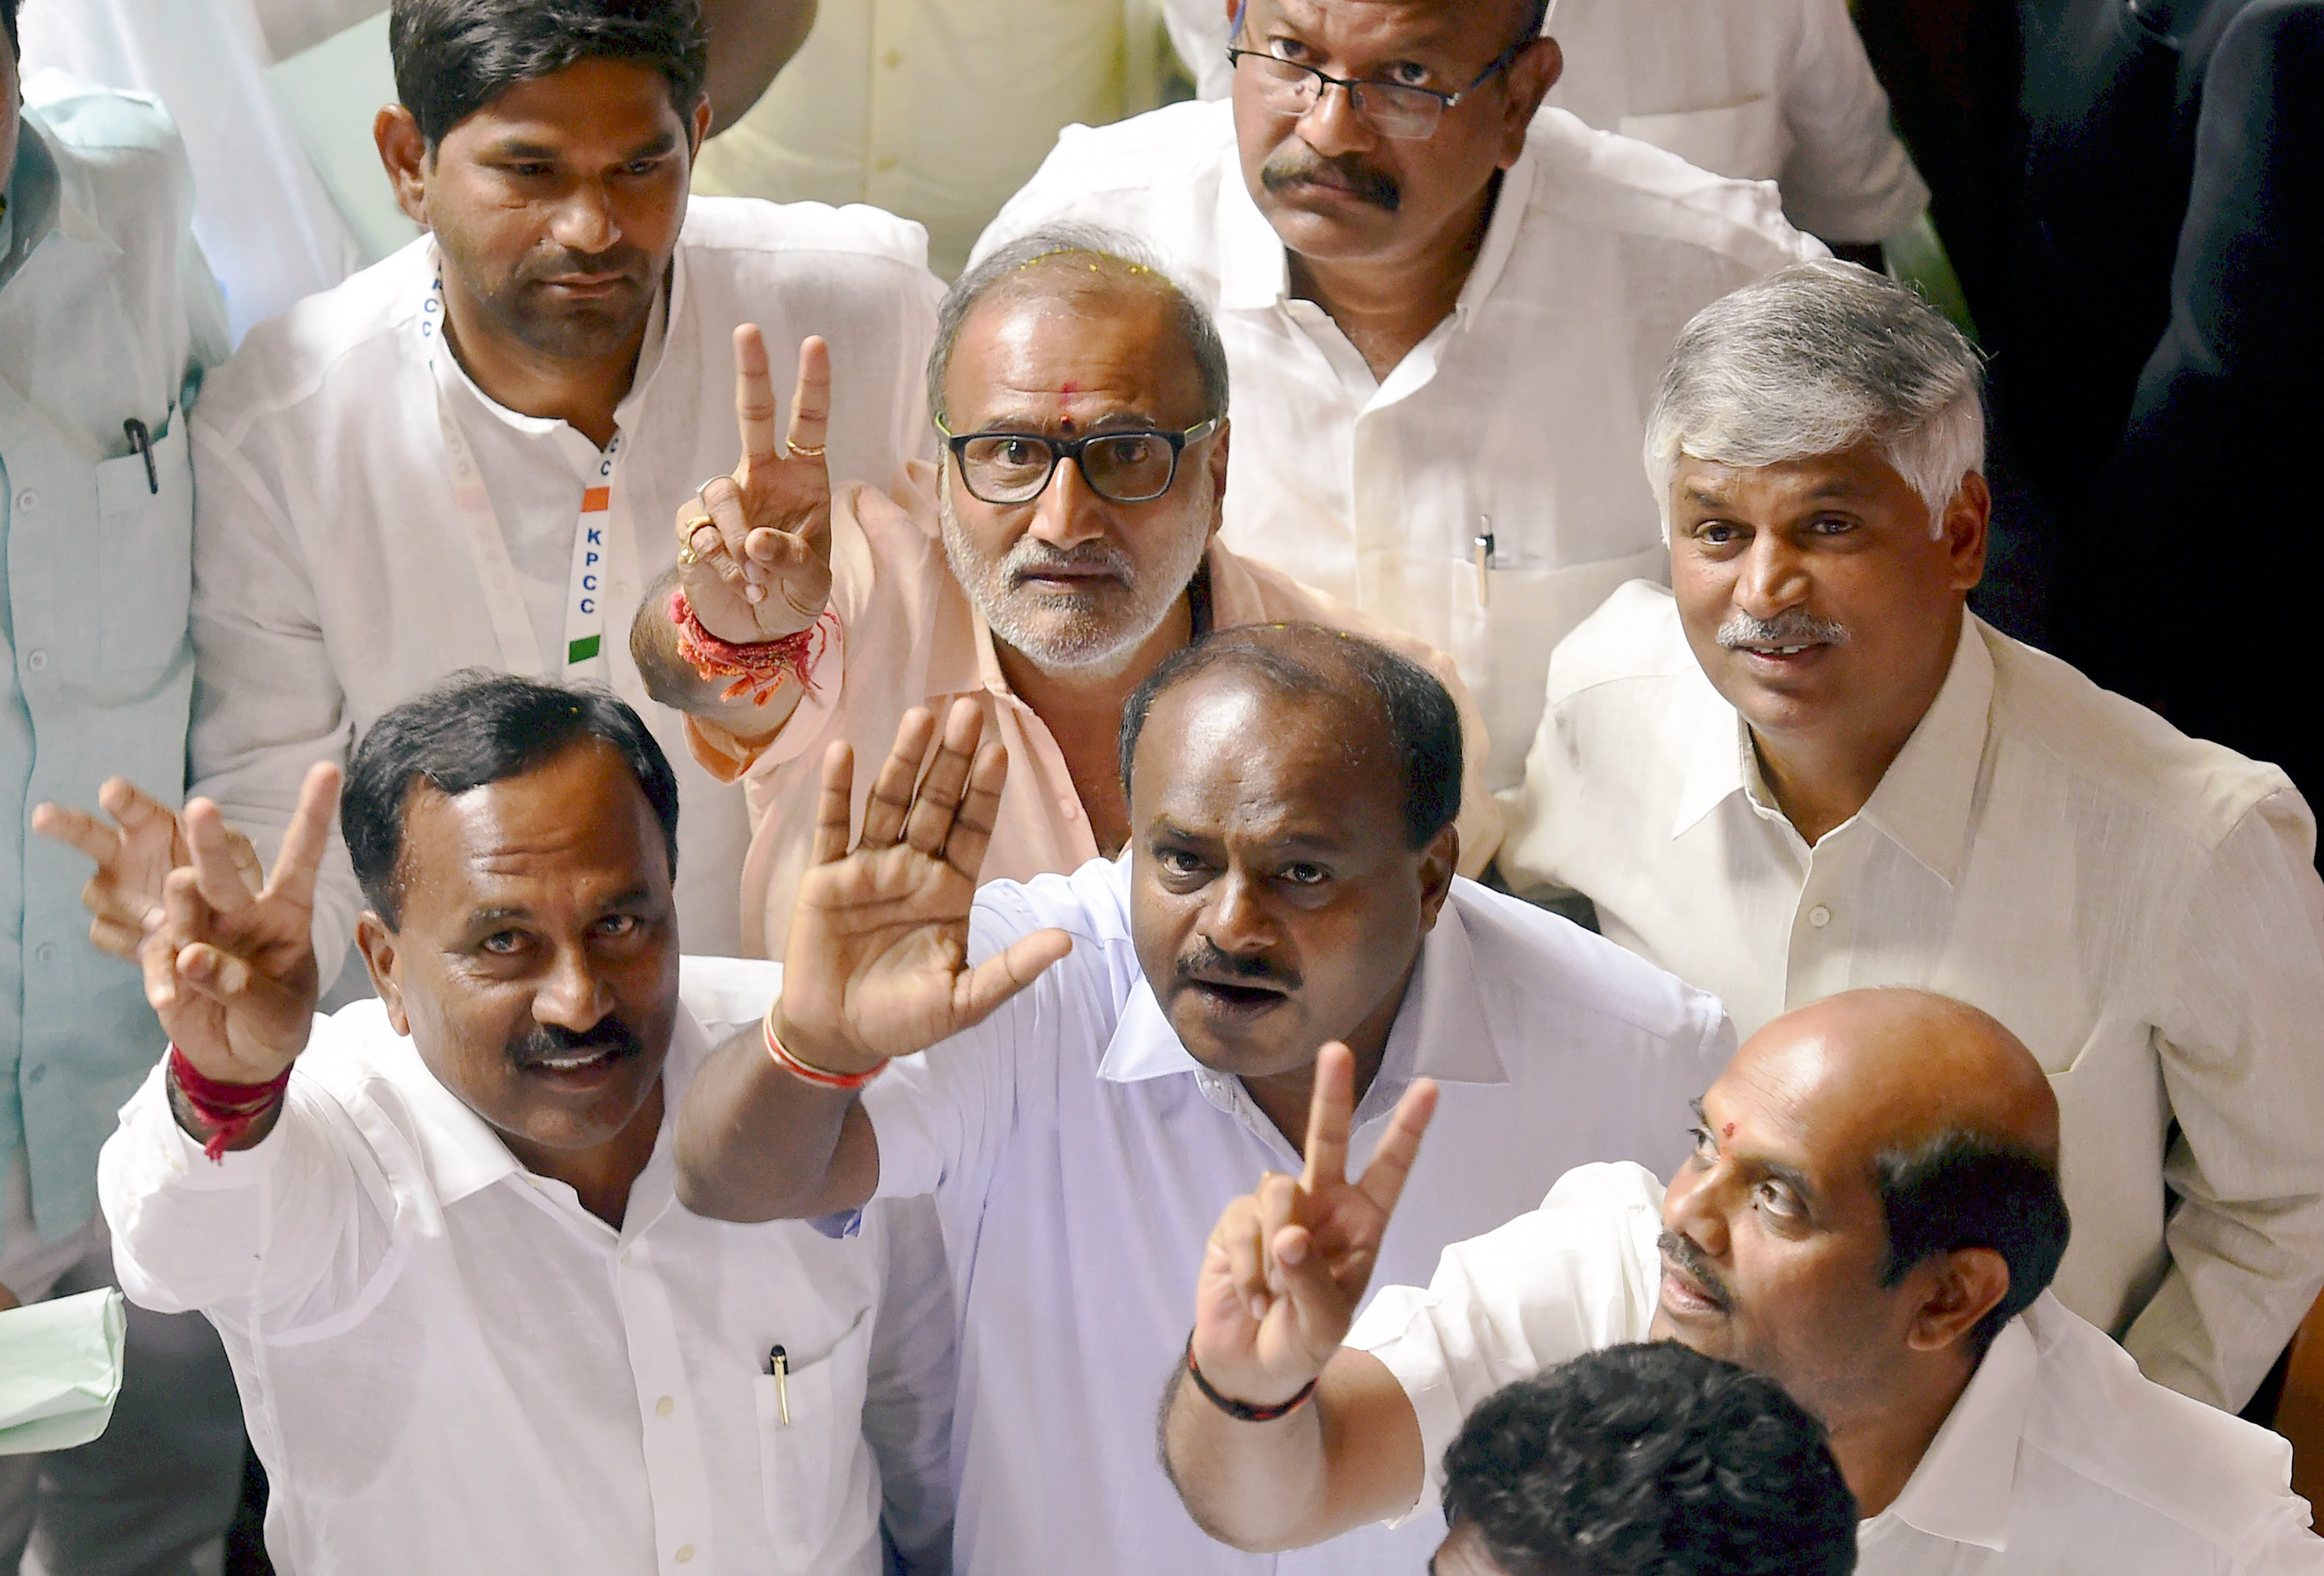 JD(S) leader H.D. Kumaraswamy and party MLAs after B.S. Yeddyurappa announced his resignation before the floor test, at Vidhana Soudha, in Bengaluru, on Saturday. Credit: PTI/Shailendra Bhojak